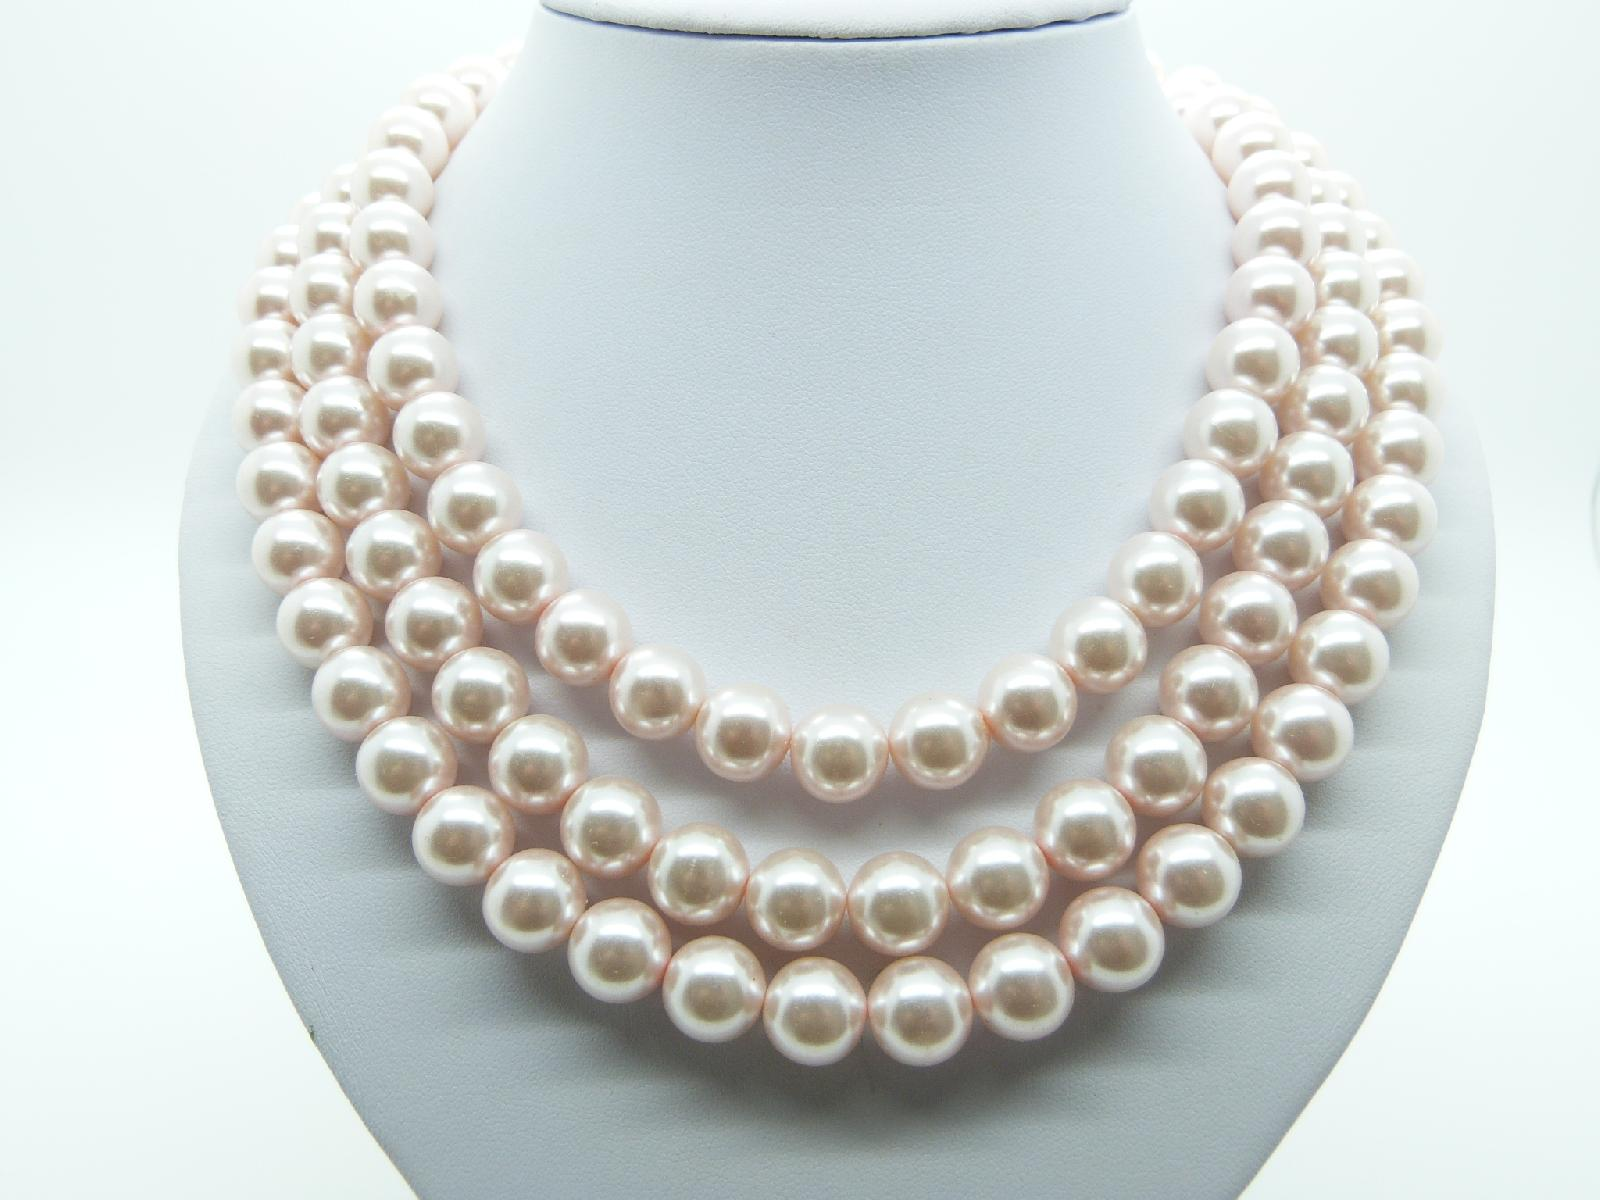 Vintage 80s Heavy Pink Faux Pearl Glass Bead Endless Necklace 76cms!